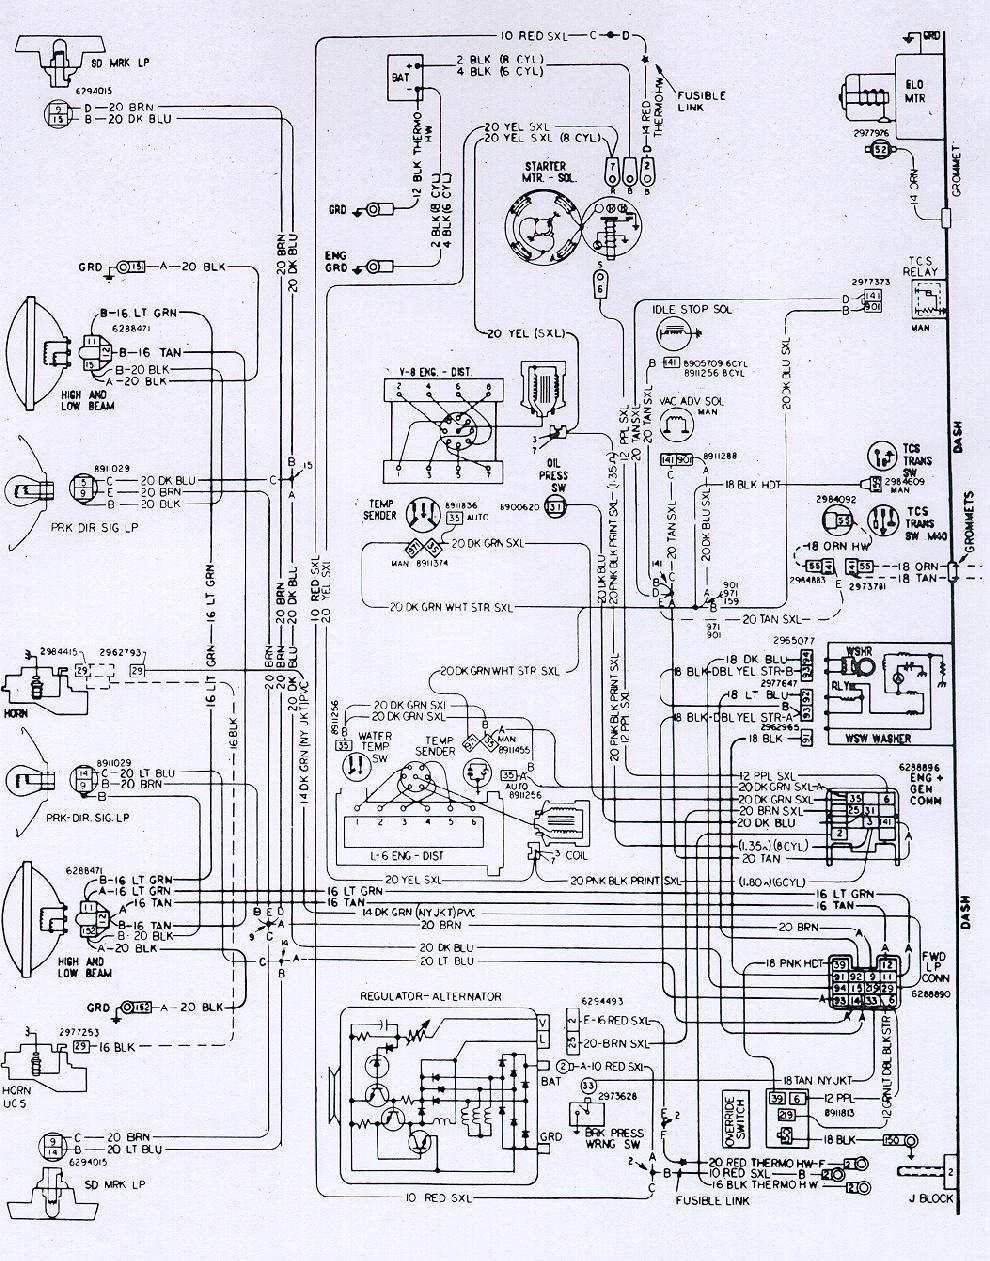 medium resolution of camaro wiring electrical information rh nastyz28 com 1984 ford bronco wiring diagram 1984 camaro engine diagram